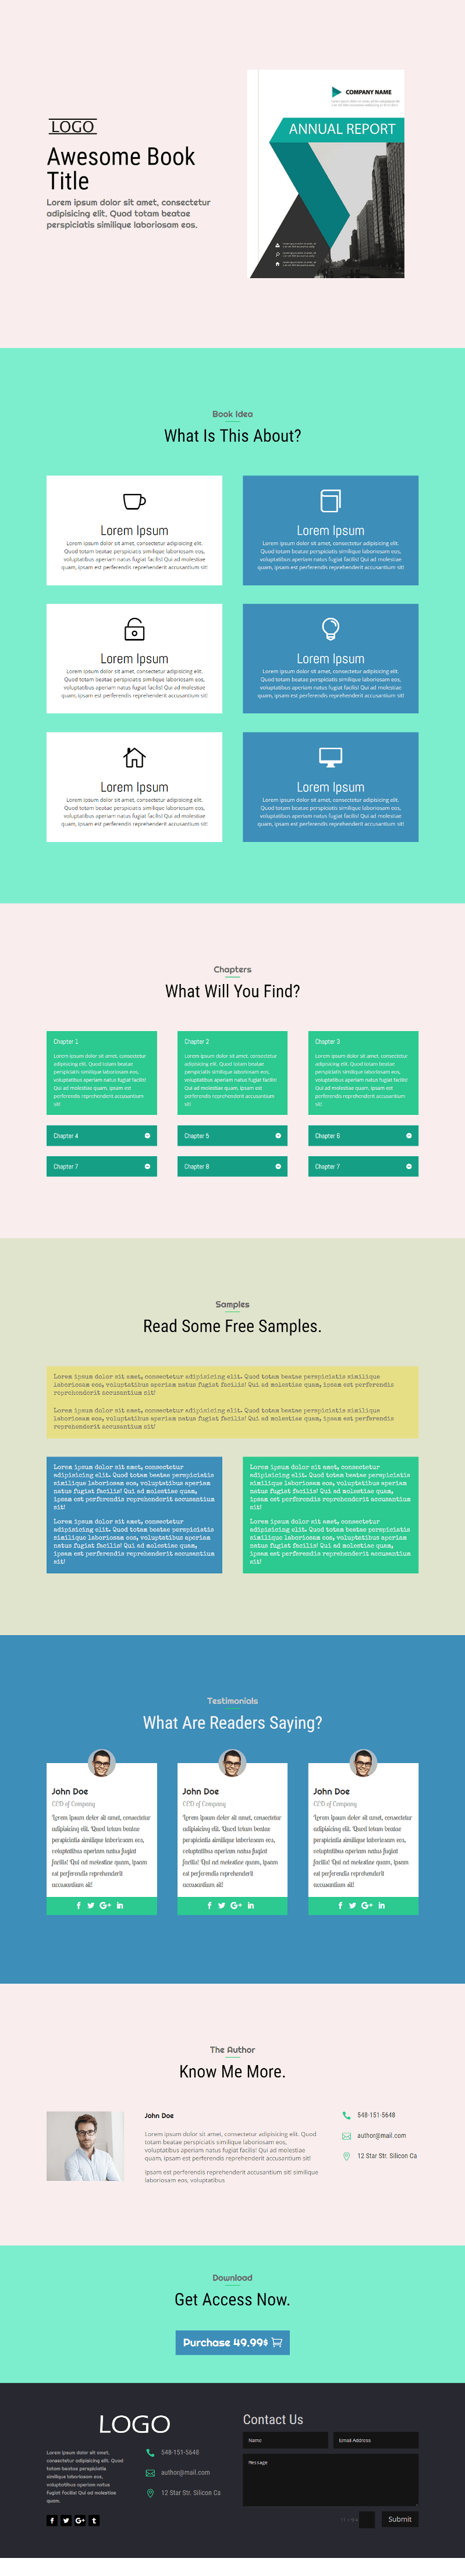 free_divi_layout_light